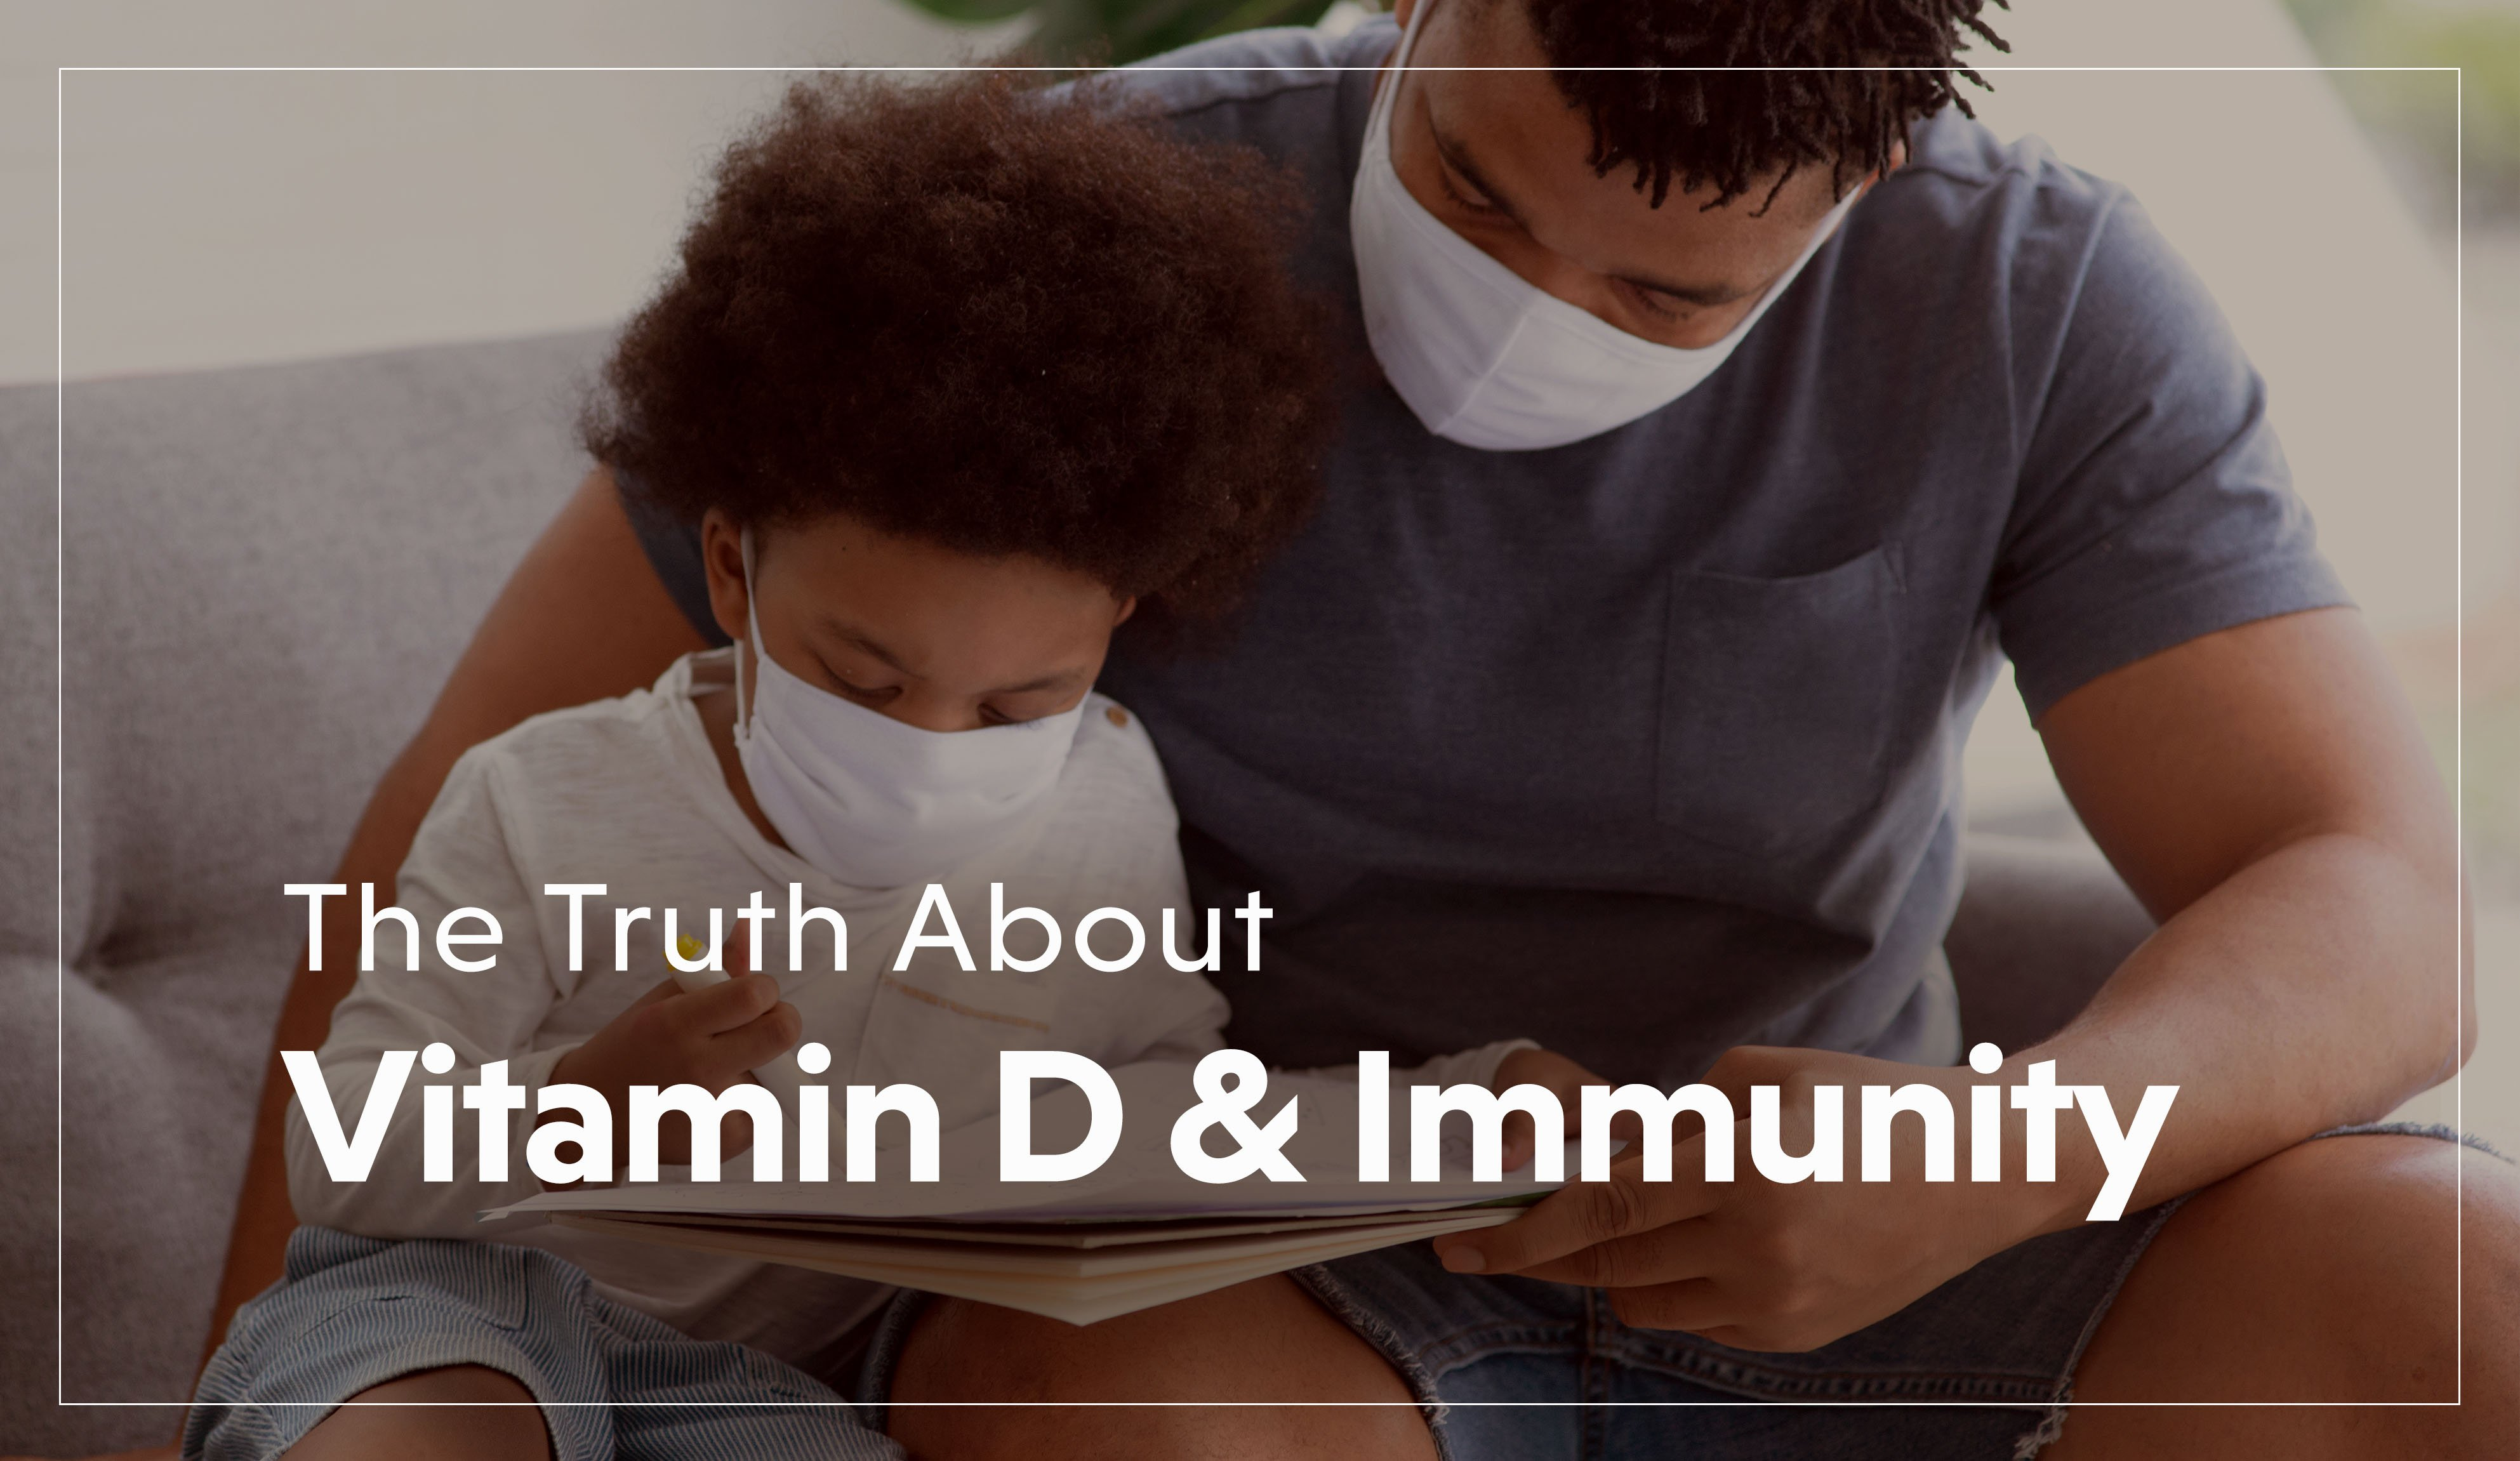 The Truth About Vitamin D and Immunity